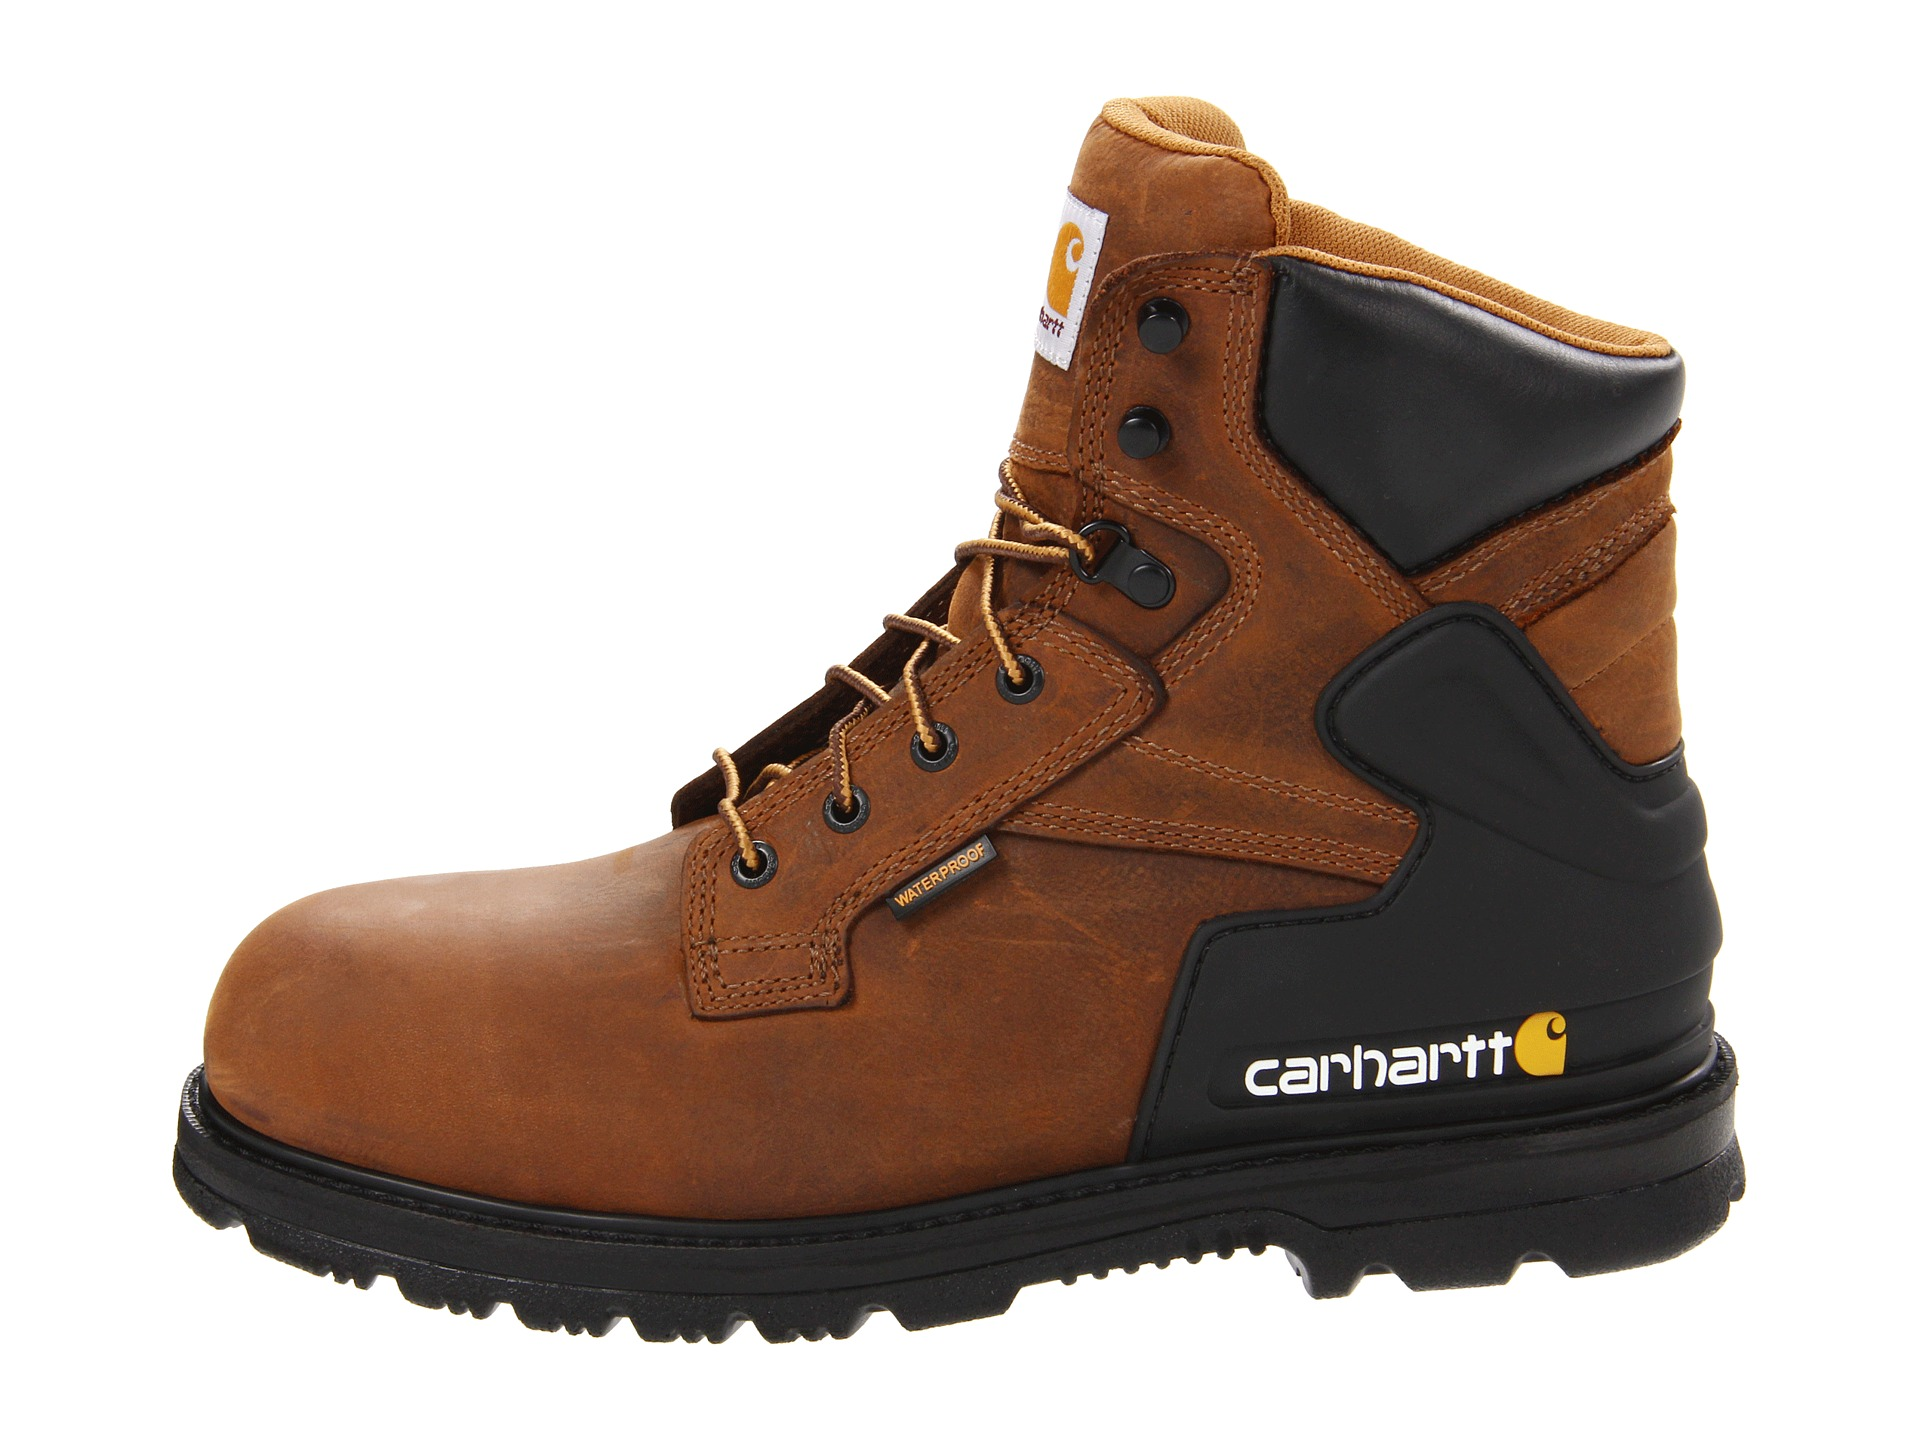 carhartt cmw6220 6 quot safety toe boot at zappos